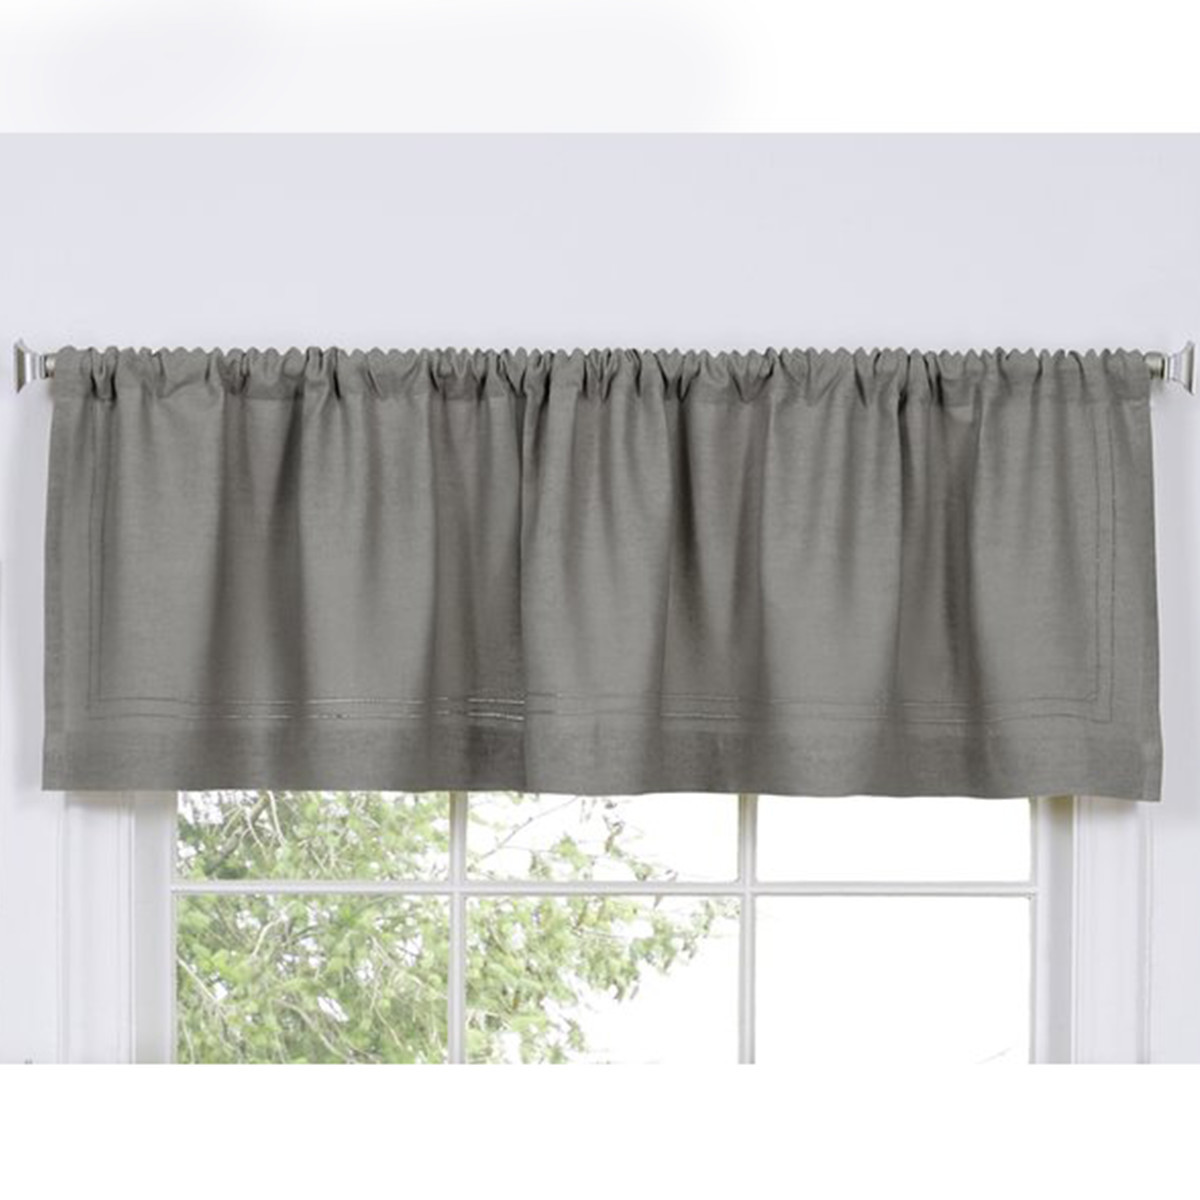 Simple gray valance on a white window photo